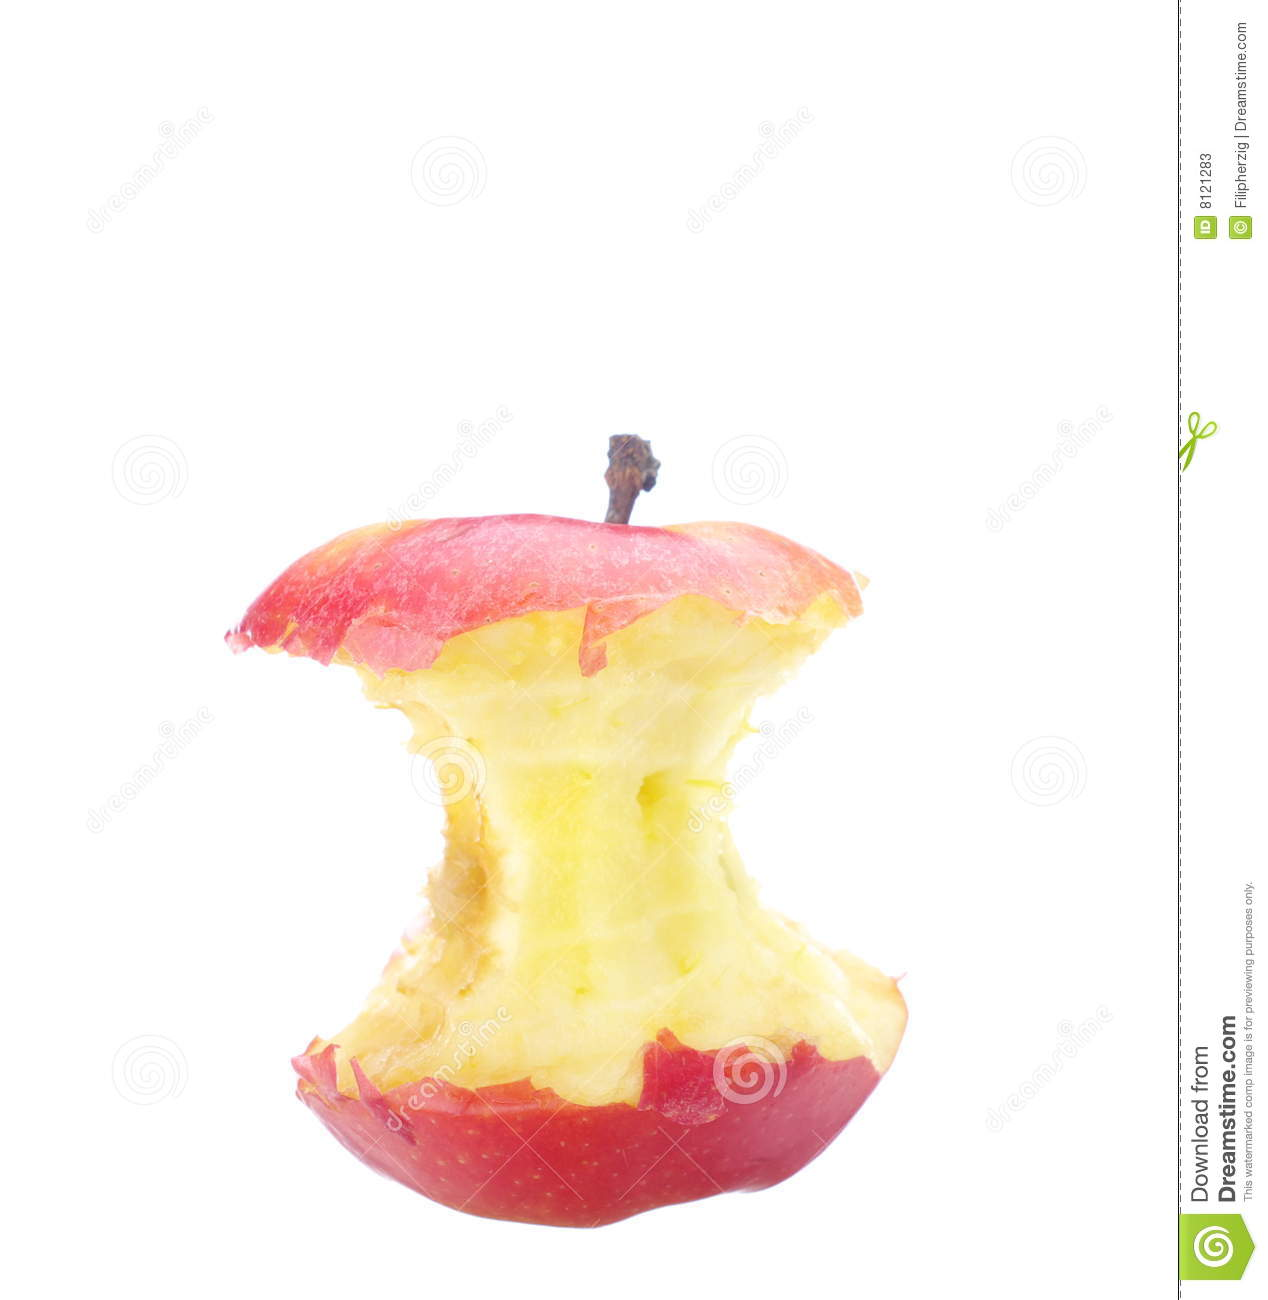 Apple Core Stock Photos - Image: 8121283